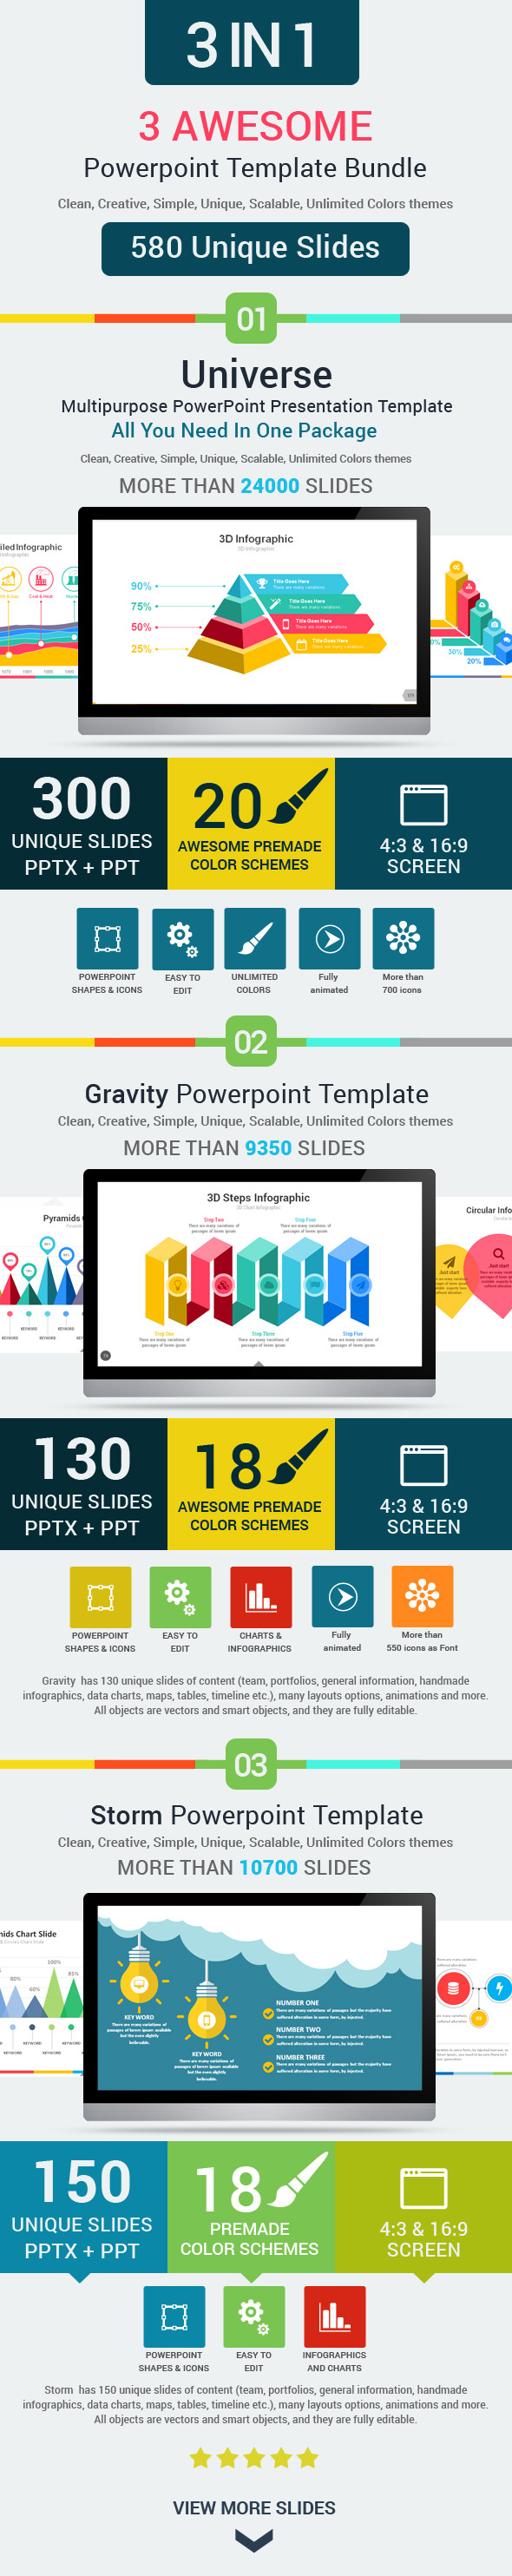 3 powerpoint template bundle by rojdark graphicriver 3 powerpoint template bundle powerpoint templates presentation templates alramifo Image collections